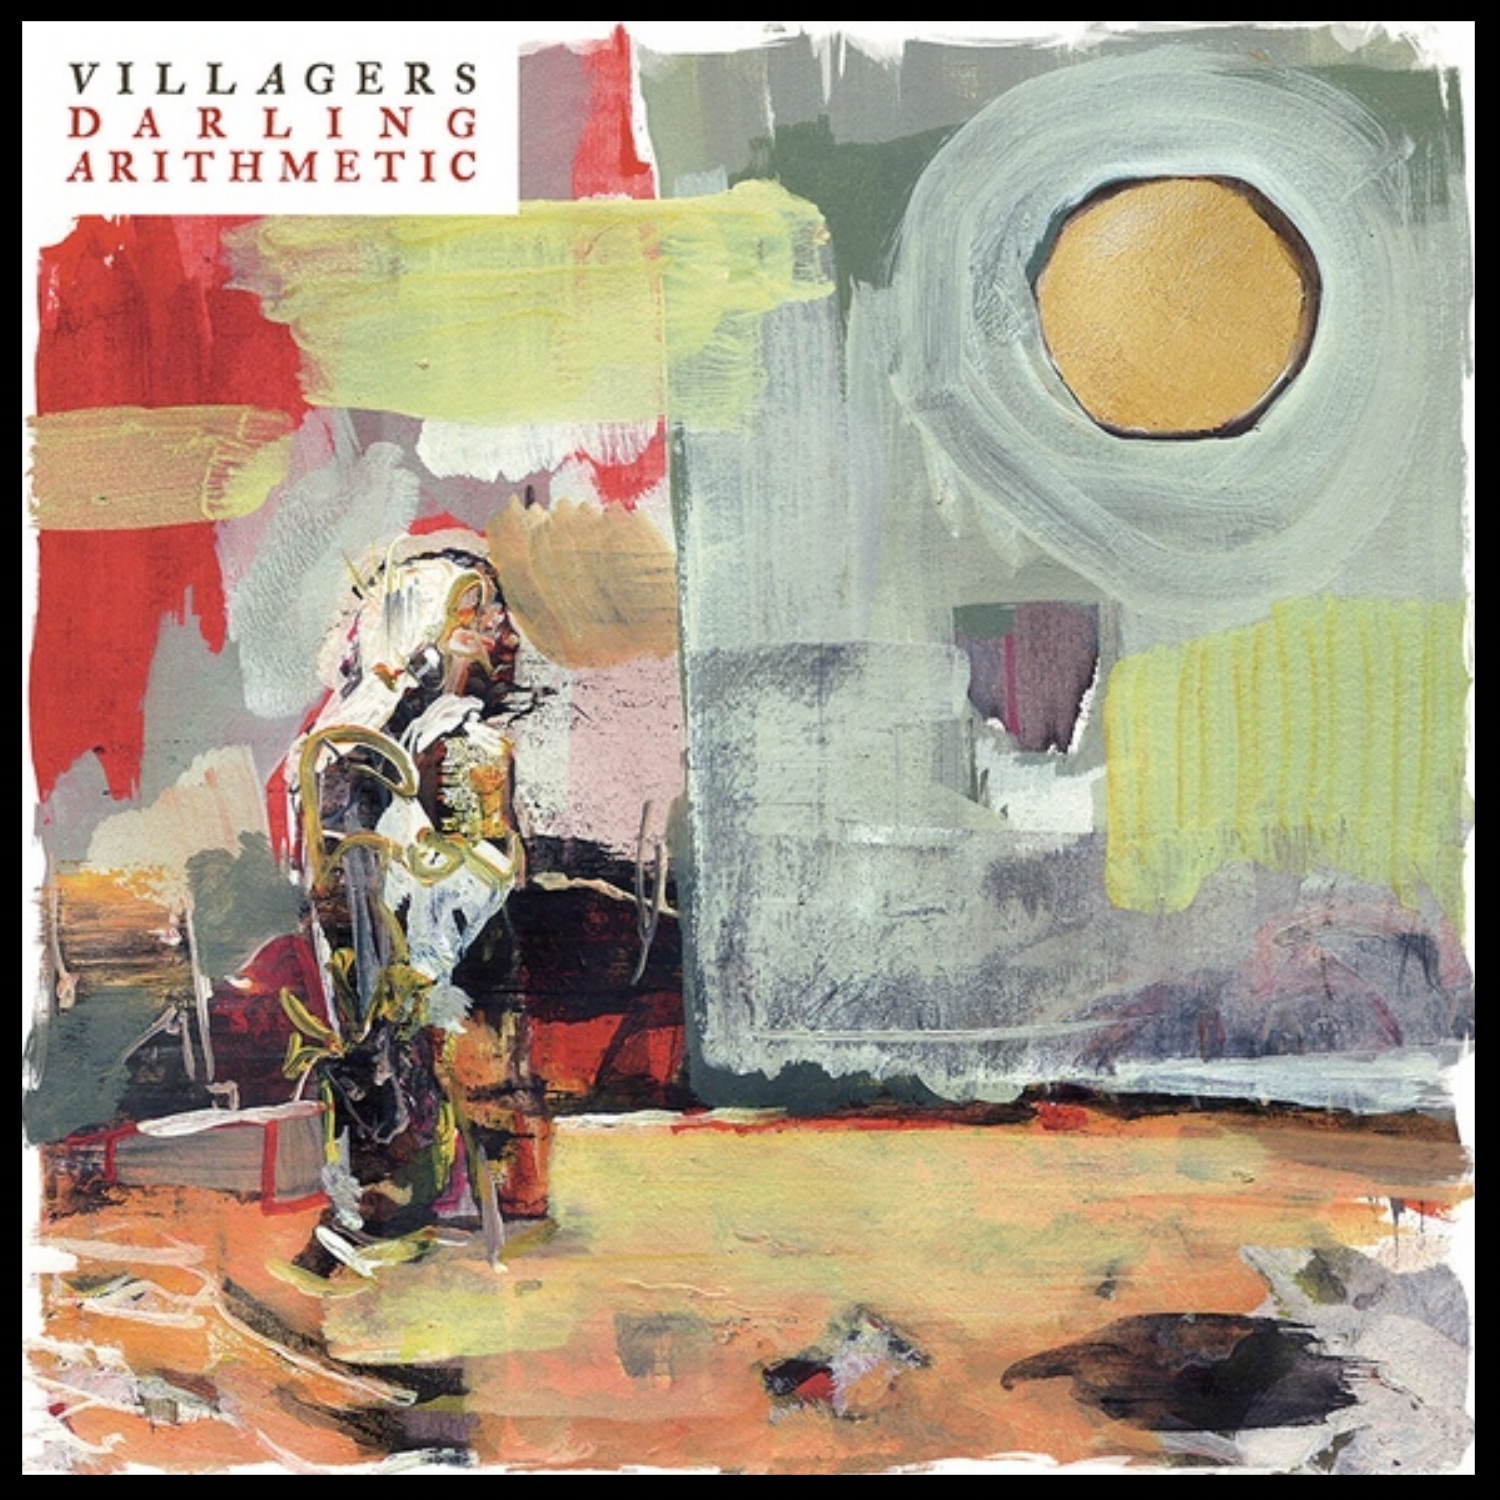 Villagers Darling Arithmetic  Mixing (Deluxe Track)